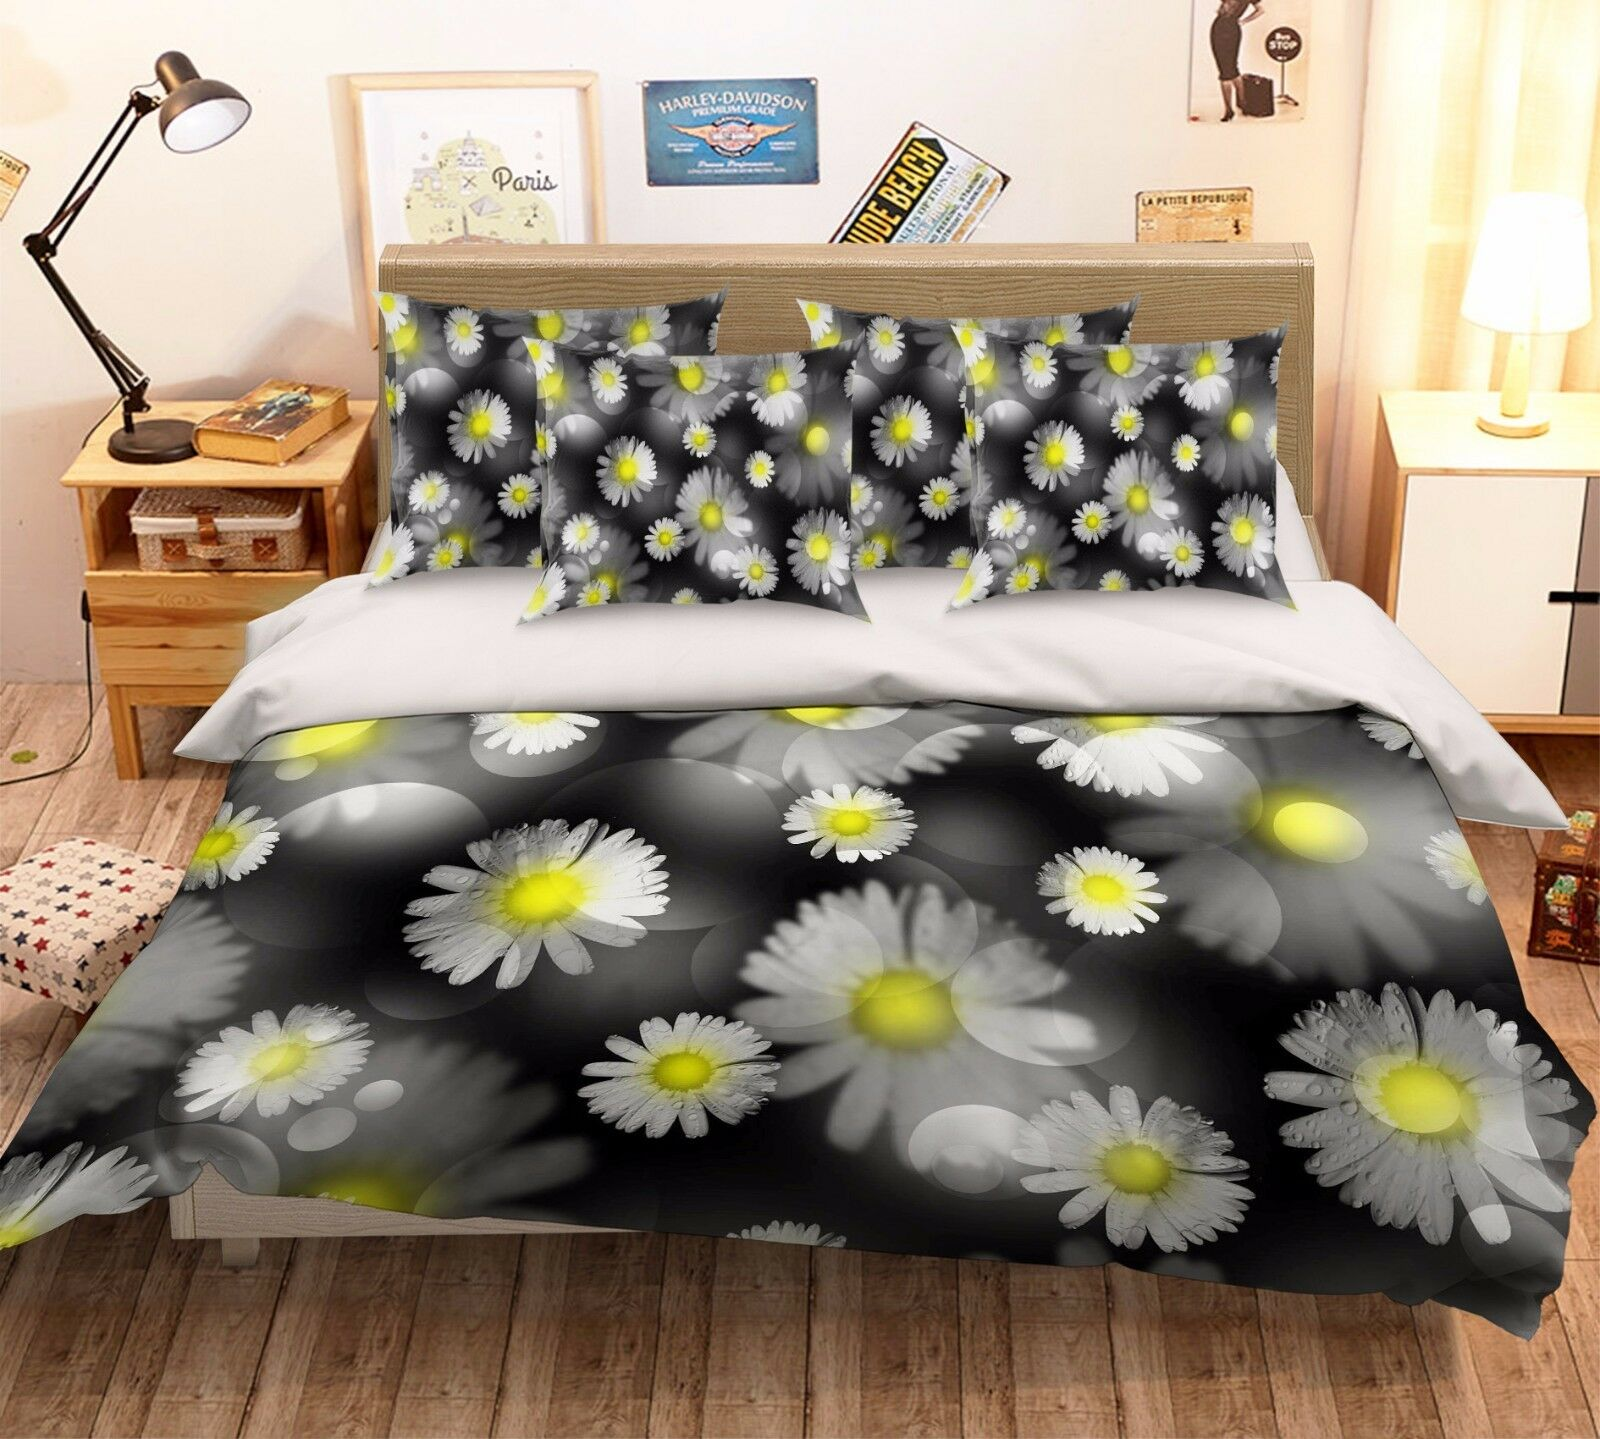 3D Flowers 231 Bed Pillowcases Quilt Duvet Cover Set Single Queen King Größe AU